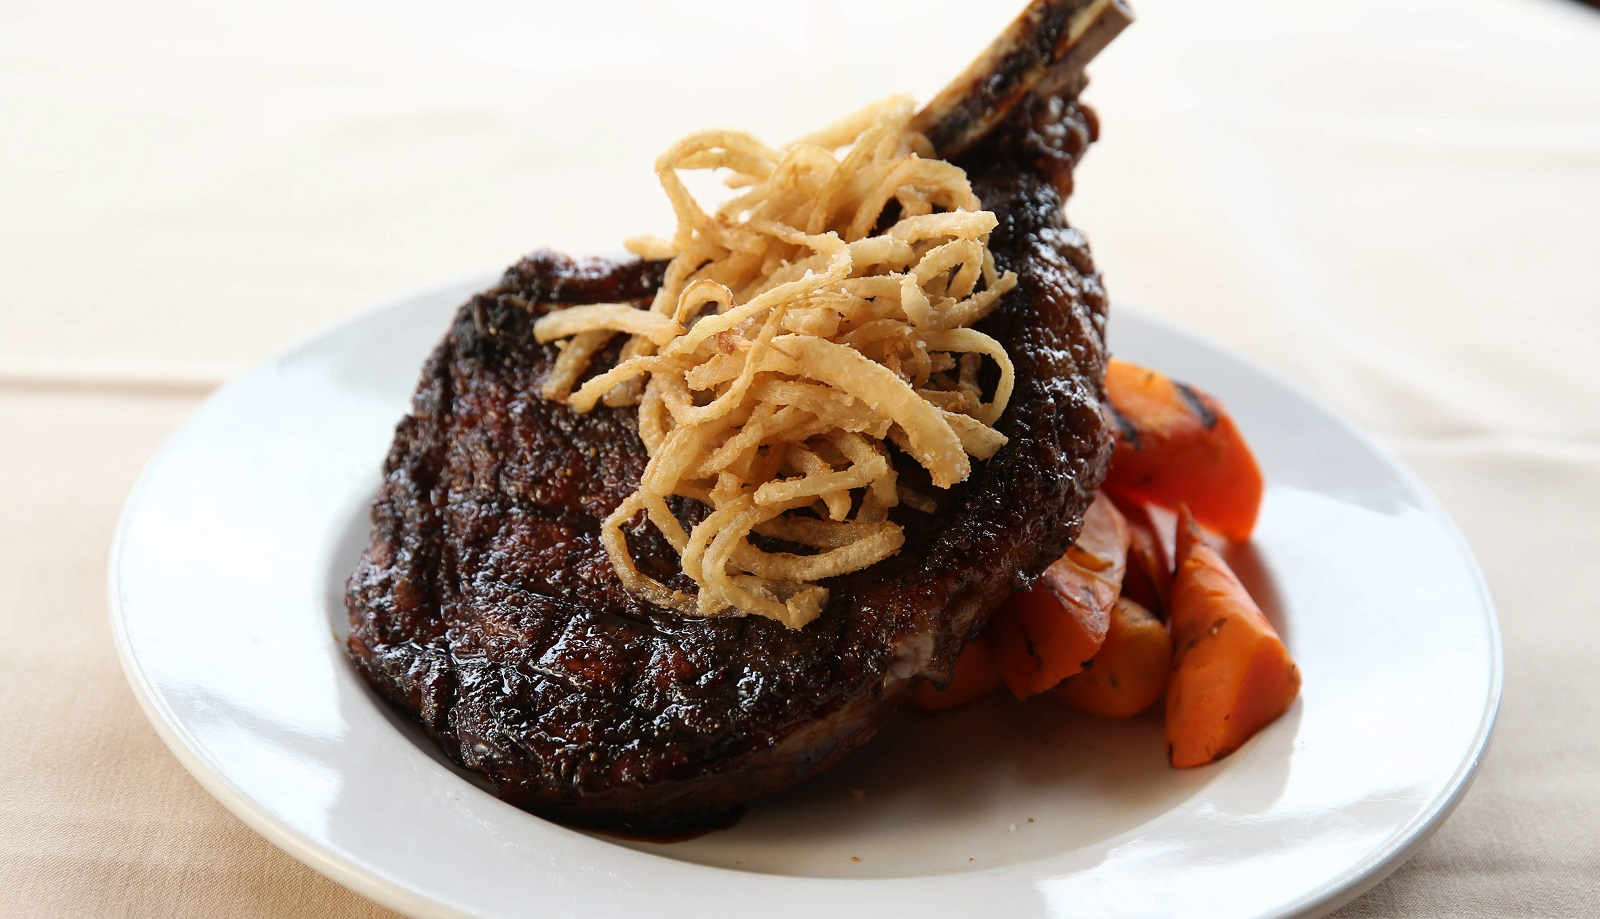 Molasses glazed and grilled cowboy steak, which is a 24-ounce, bone-in ribeye, served with potato croquettes, grilled broccoli, carrots and crispy shoestring onions. (Sharon Cantillon/Buffalo News file photo)